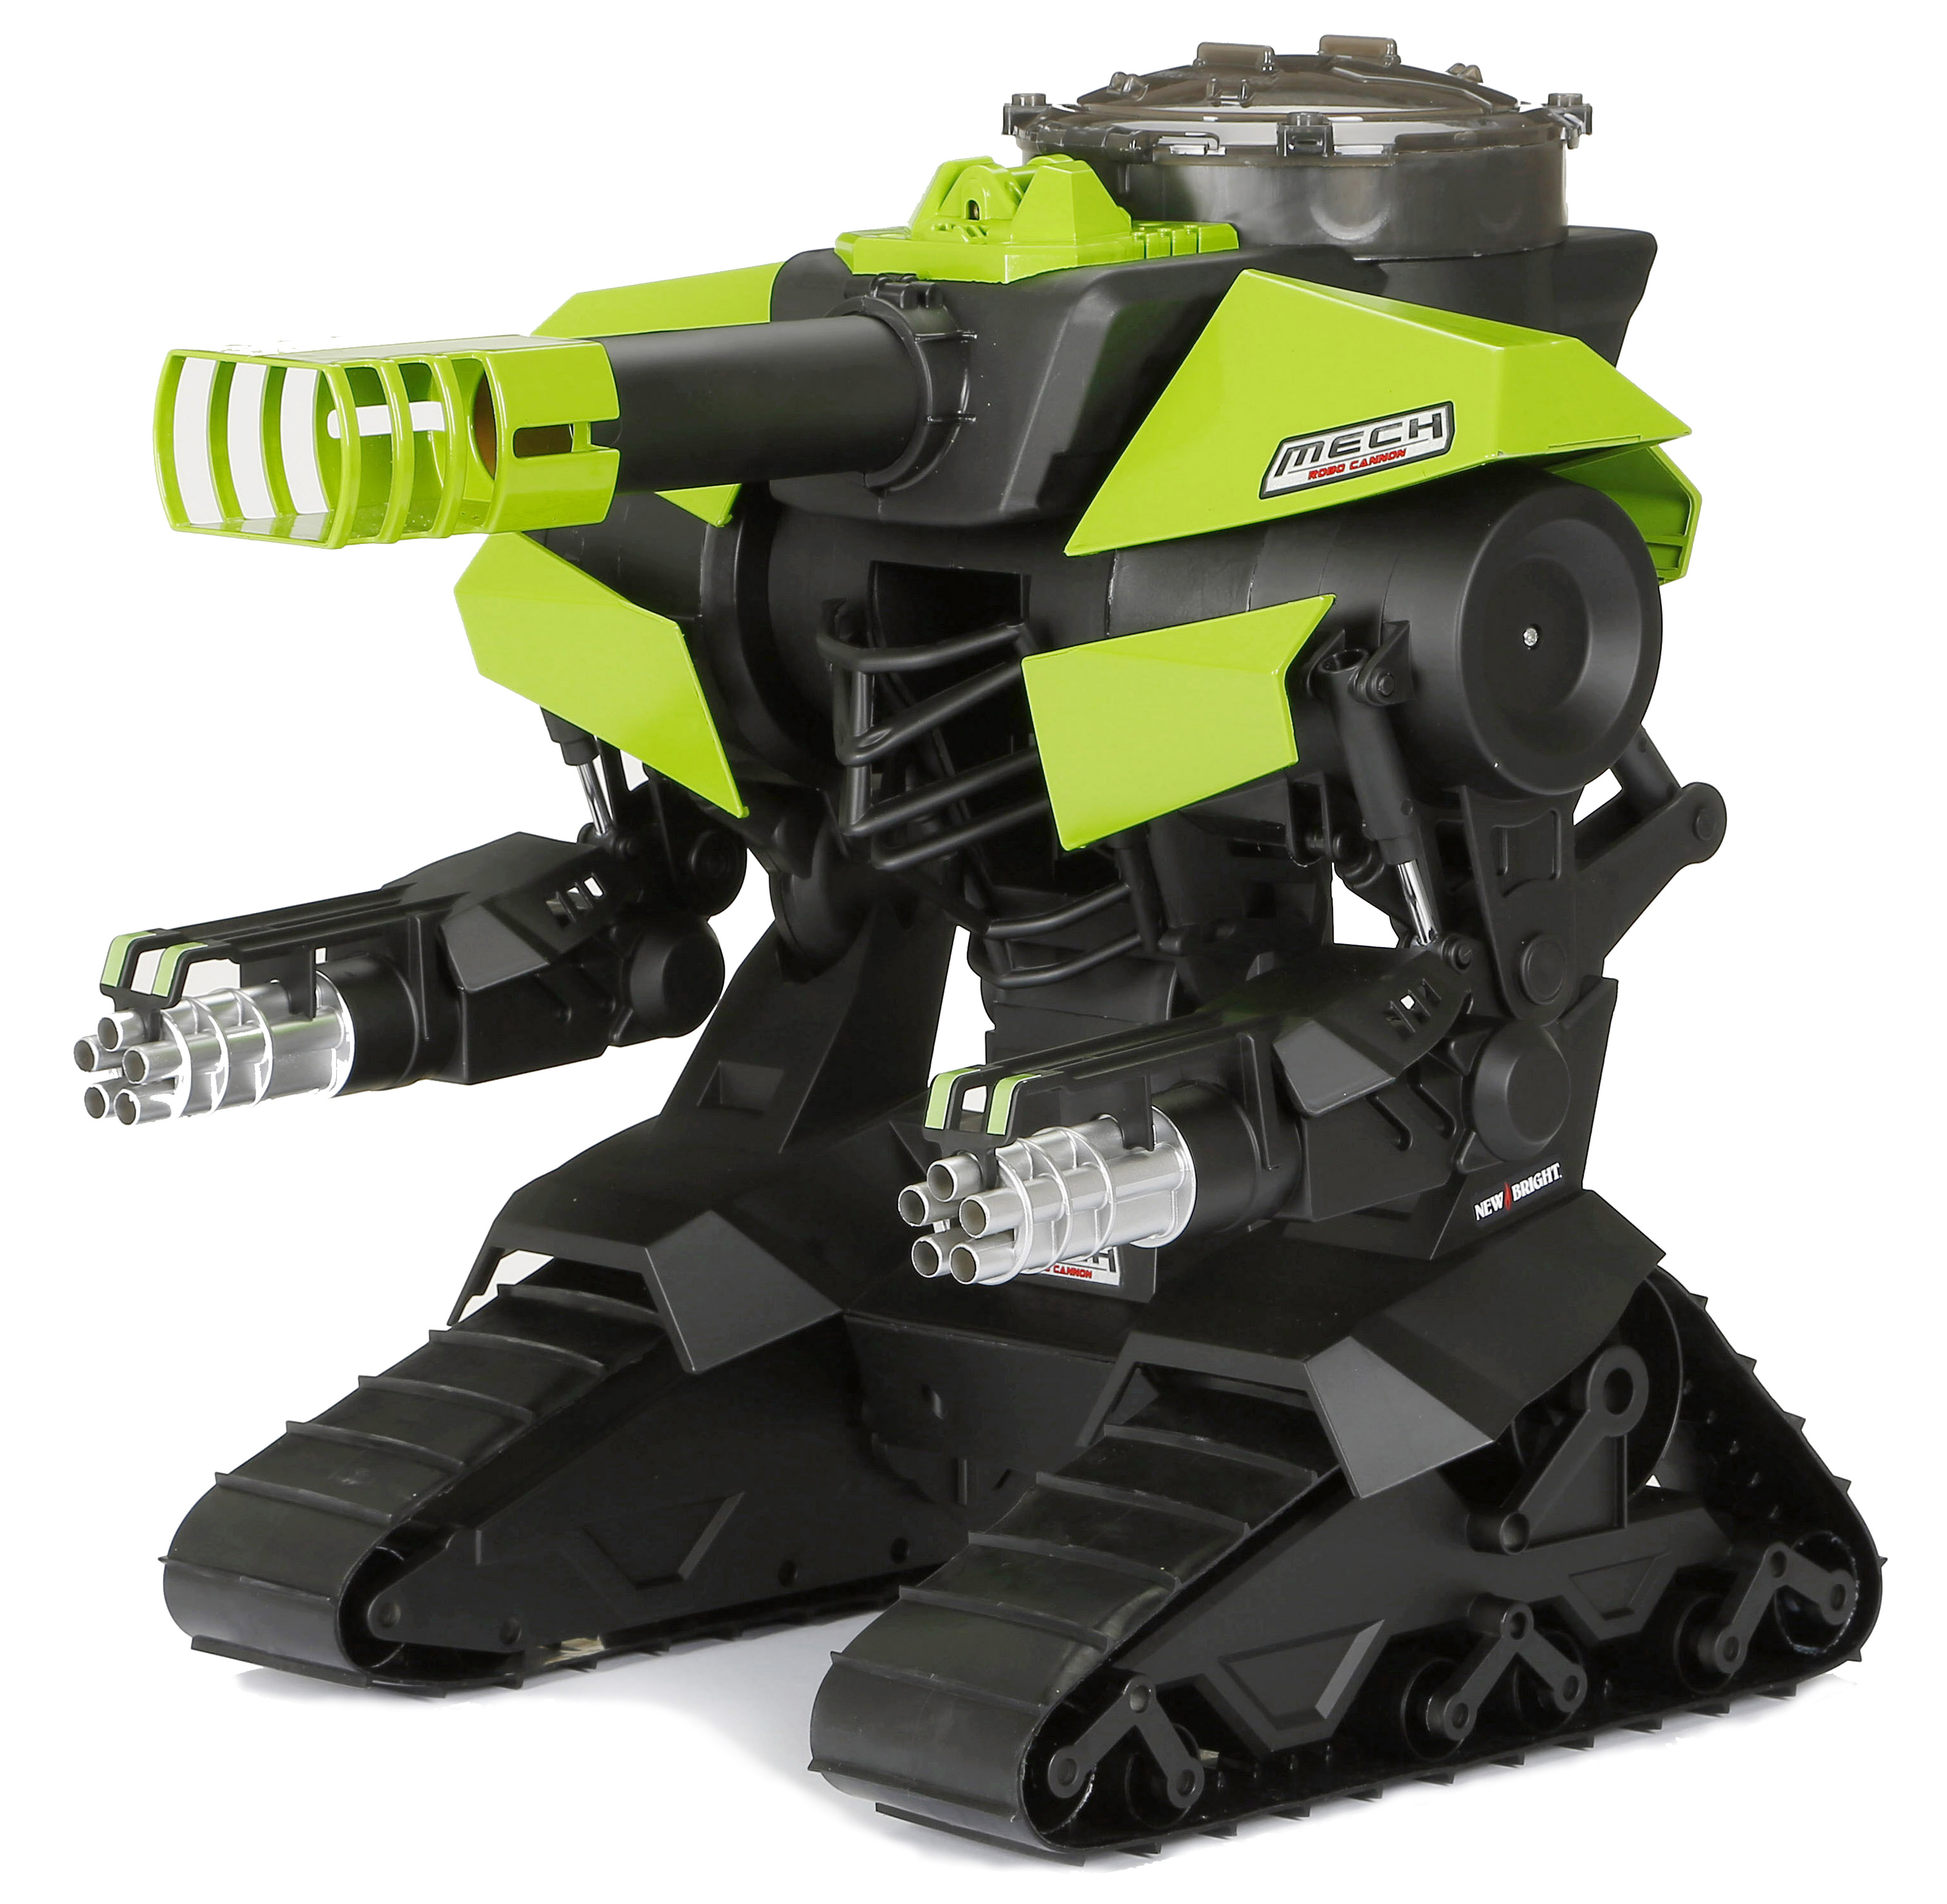 New Bright RC M.E.C.H. Robo Cannon Radio Control Blaster Robot- Green and Black